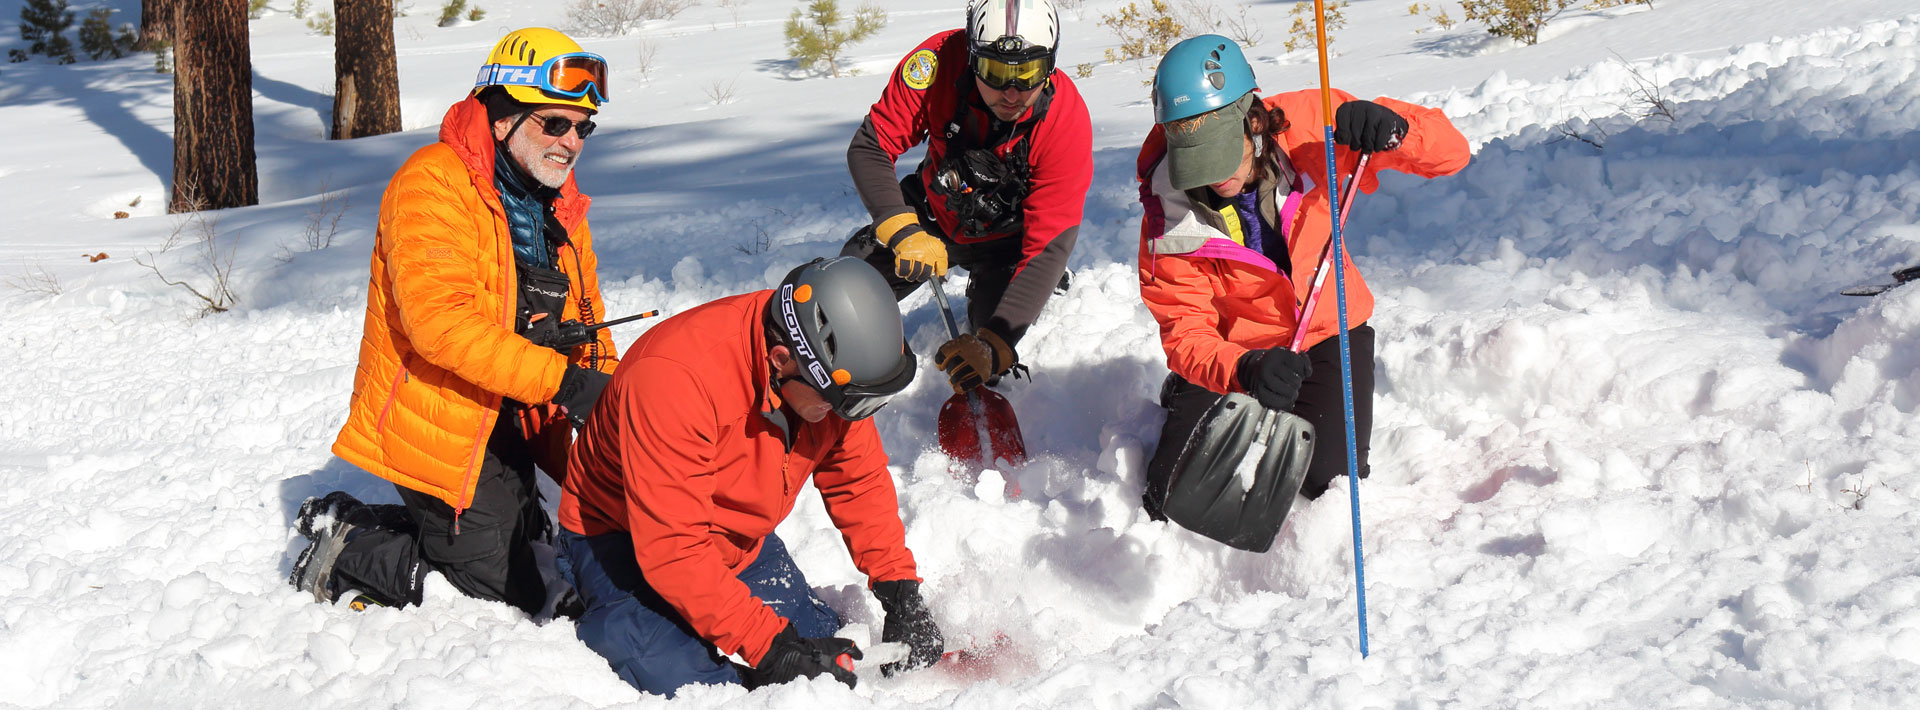 Douglas County Nevada Sheriff's Department Search and Rescue